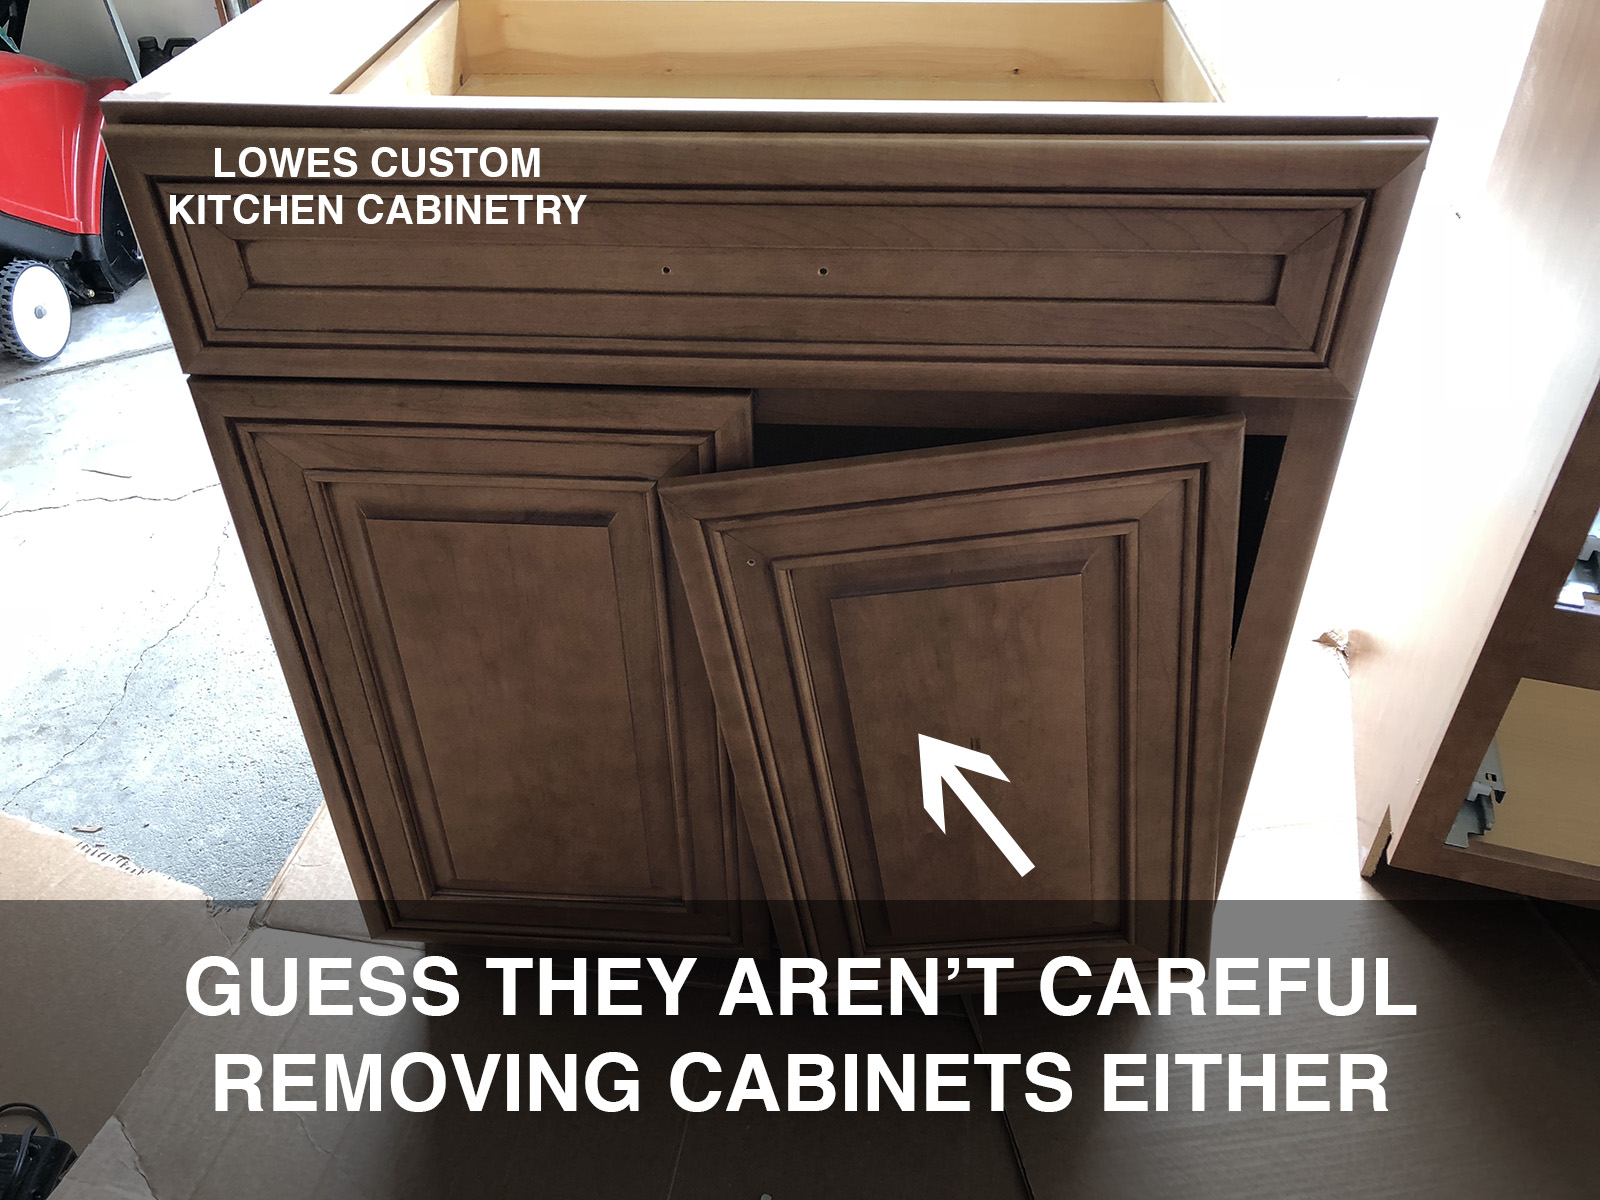 dalton bath at cabinets and socialsharing cabinetry kitchen crop lowes schuler